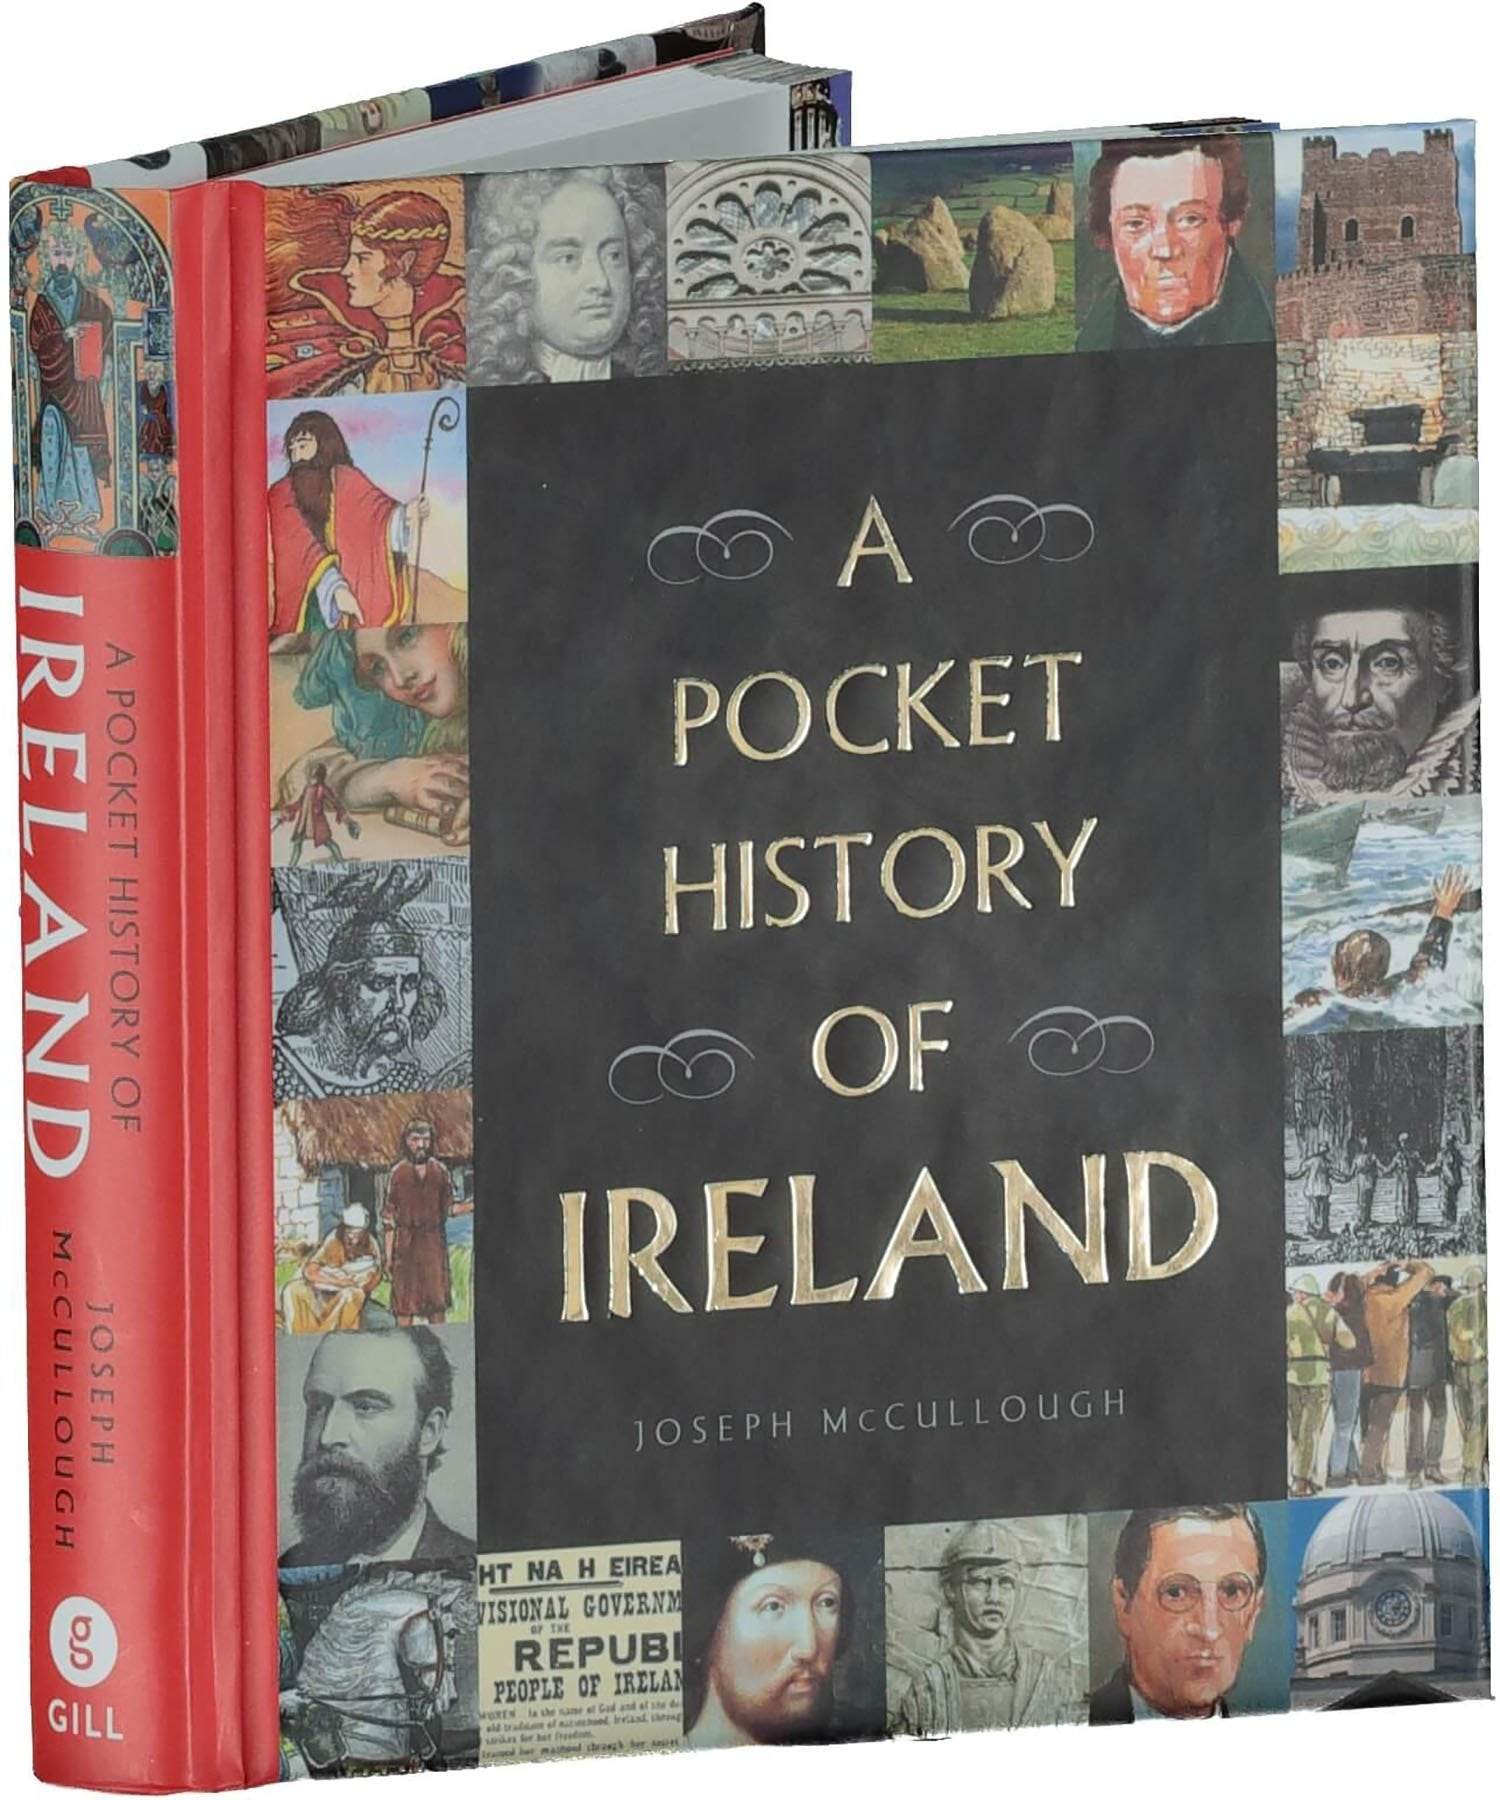 Pocket - History of Ireland - [Gill & MacMillan] - Books & Stationery - Irish Gifts